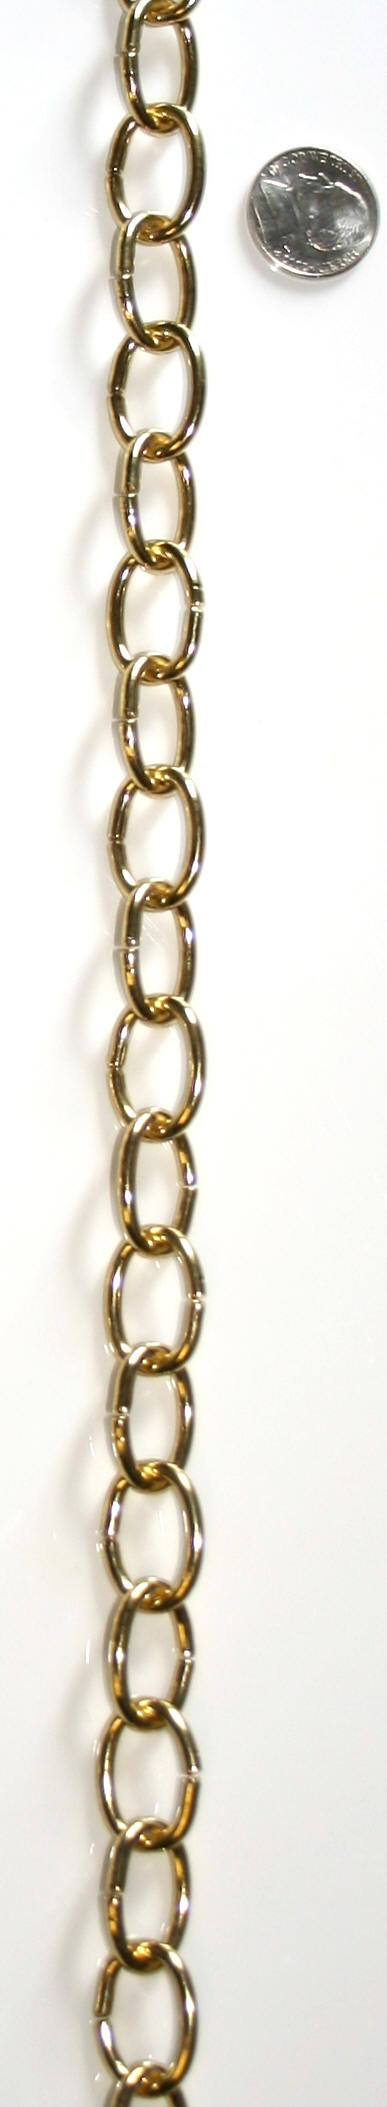 brass twisted chain chains p link